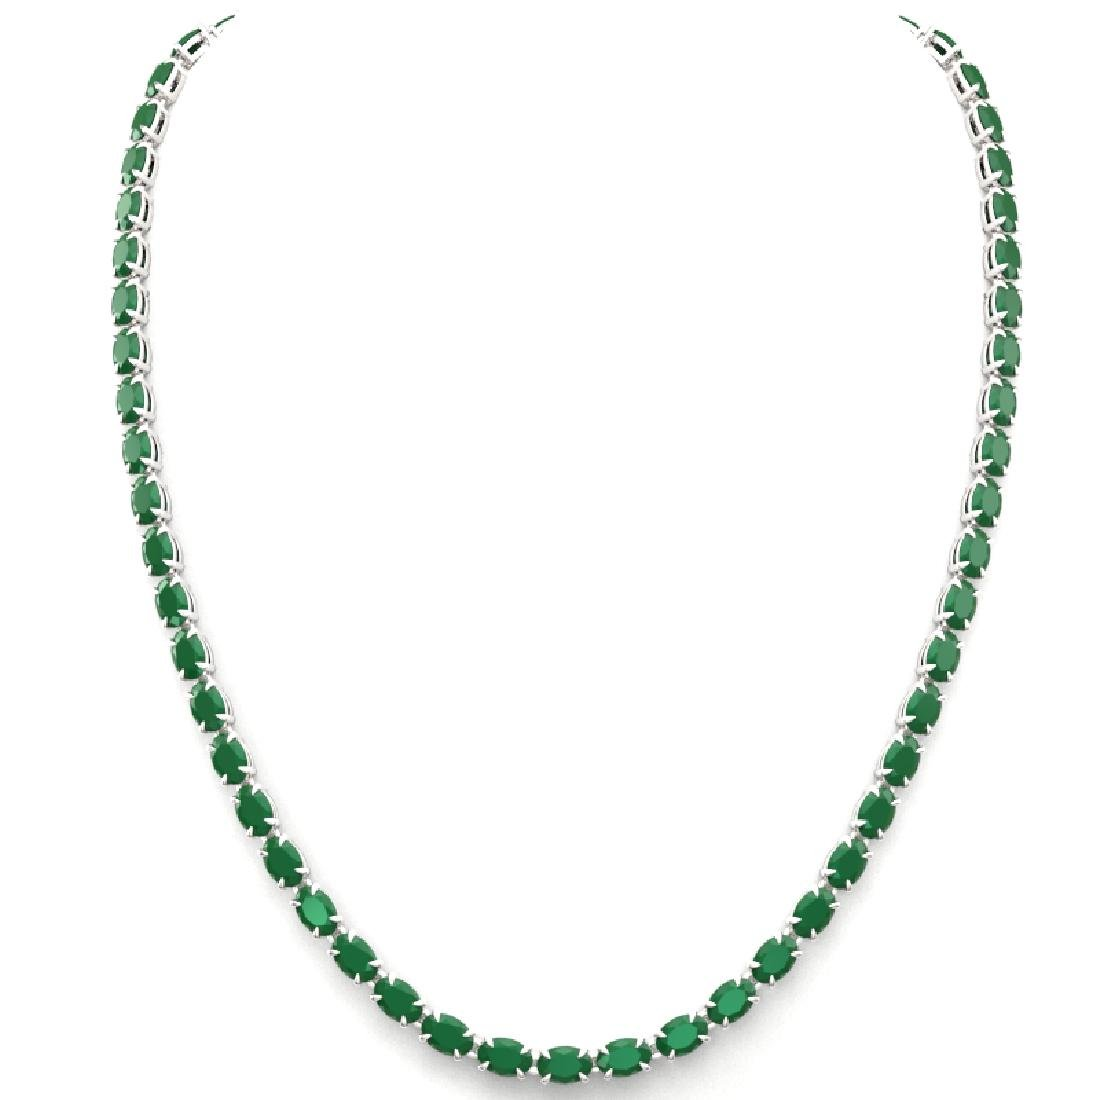 40 CTW Emerald Eternity Tennis Necklace 14K White Gold - 2